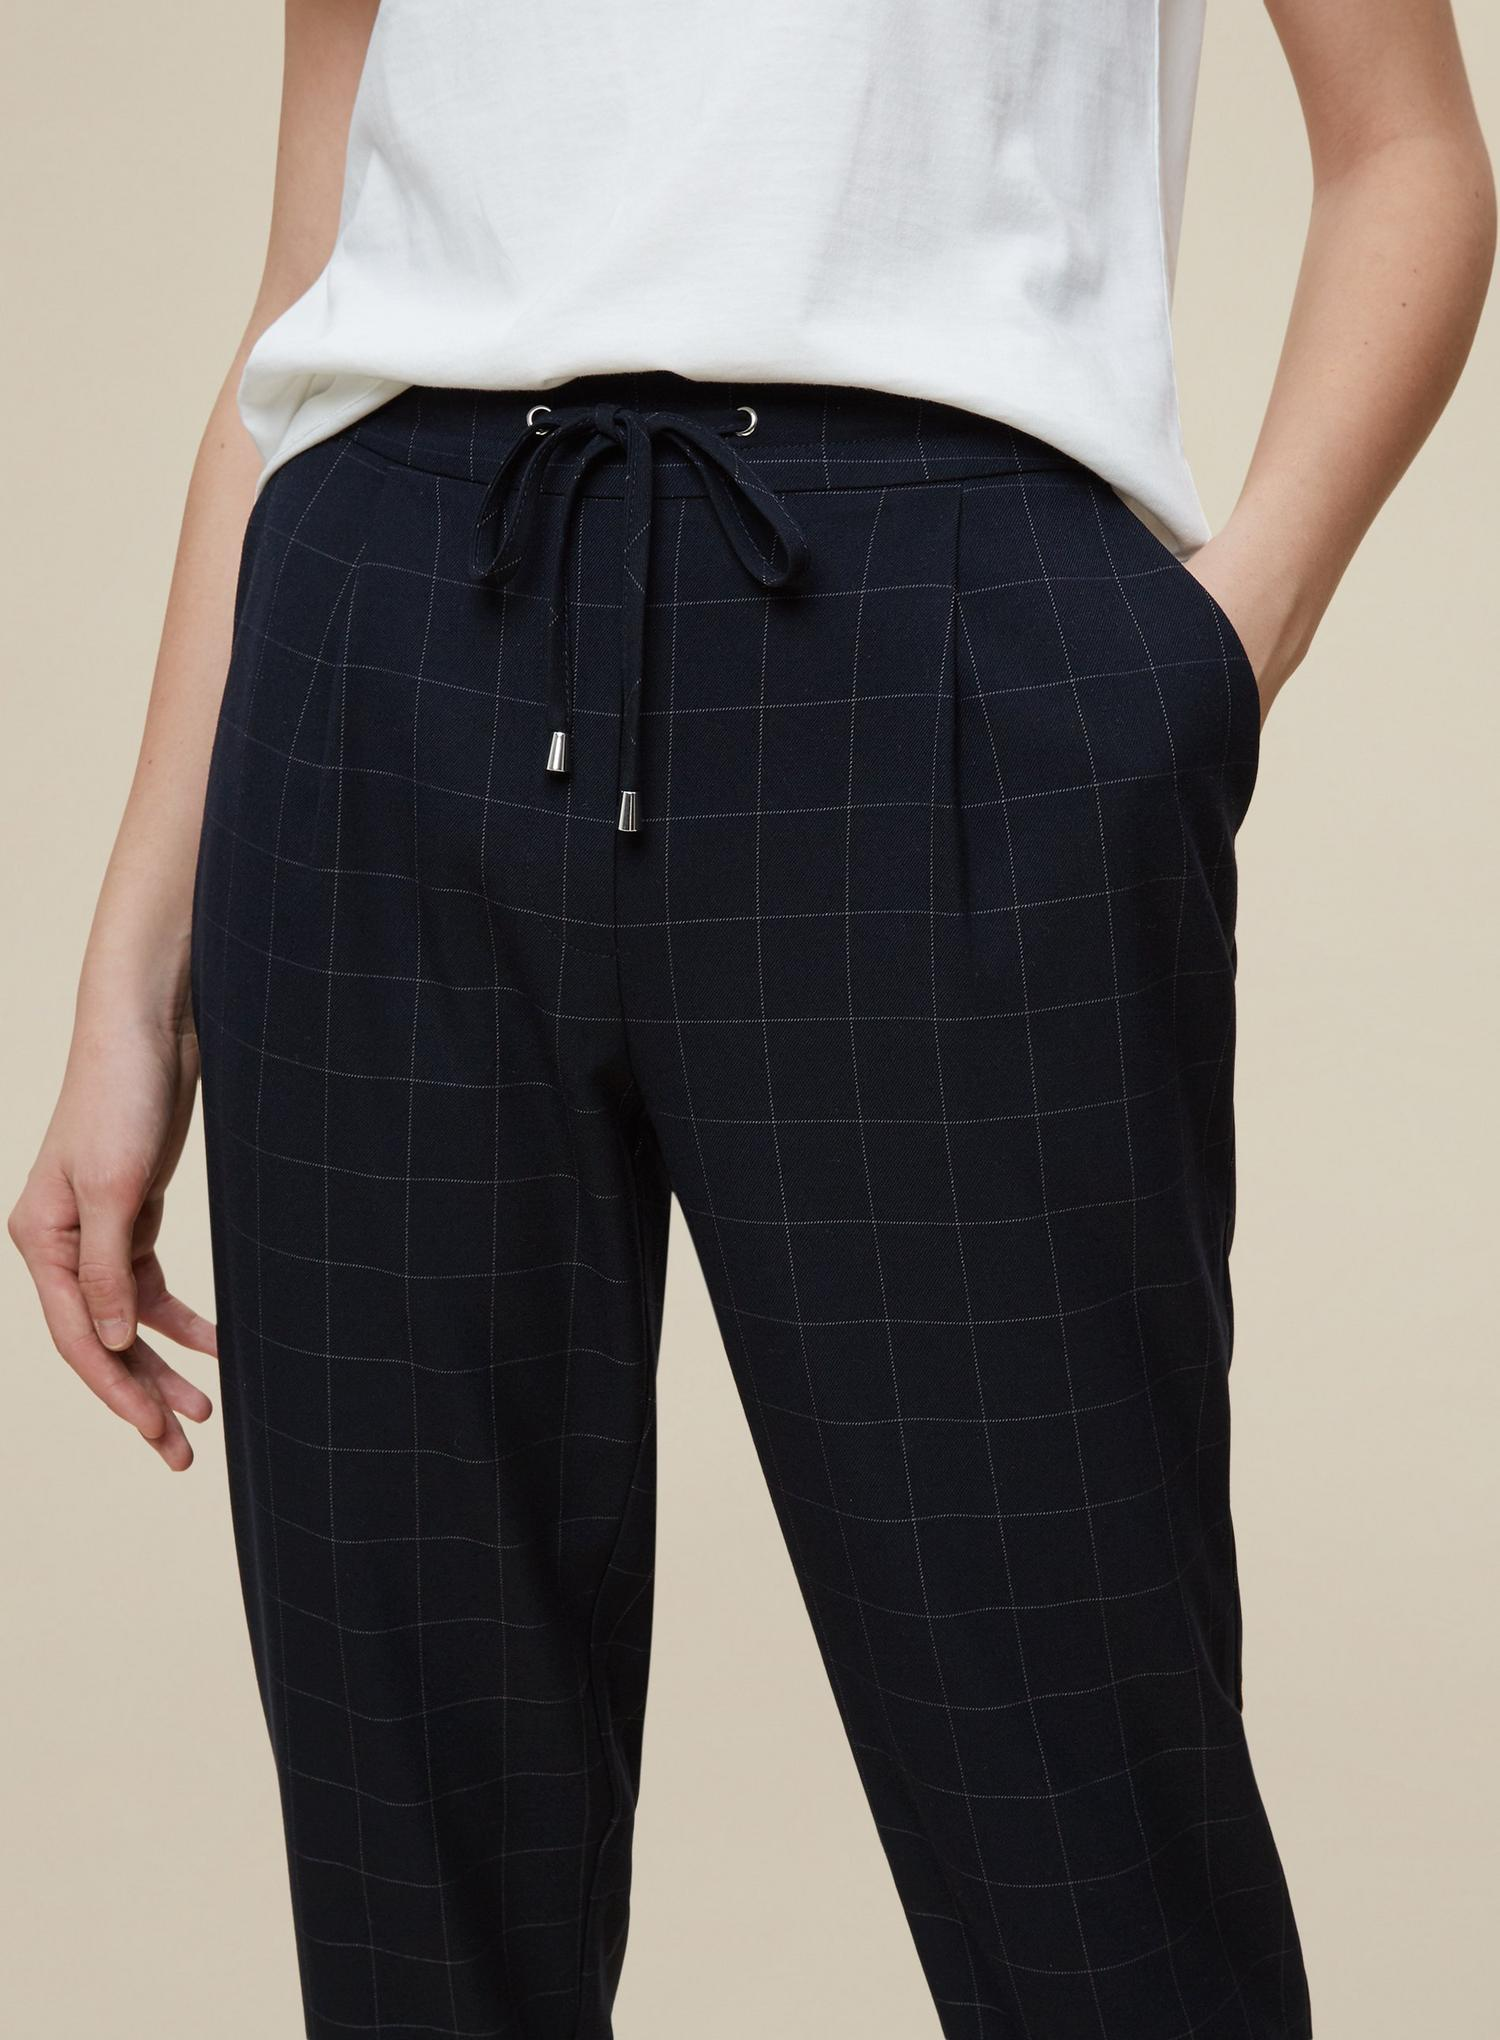 148 Navy Check Formal Jogger image number 4